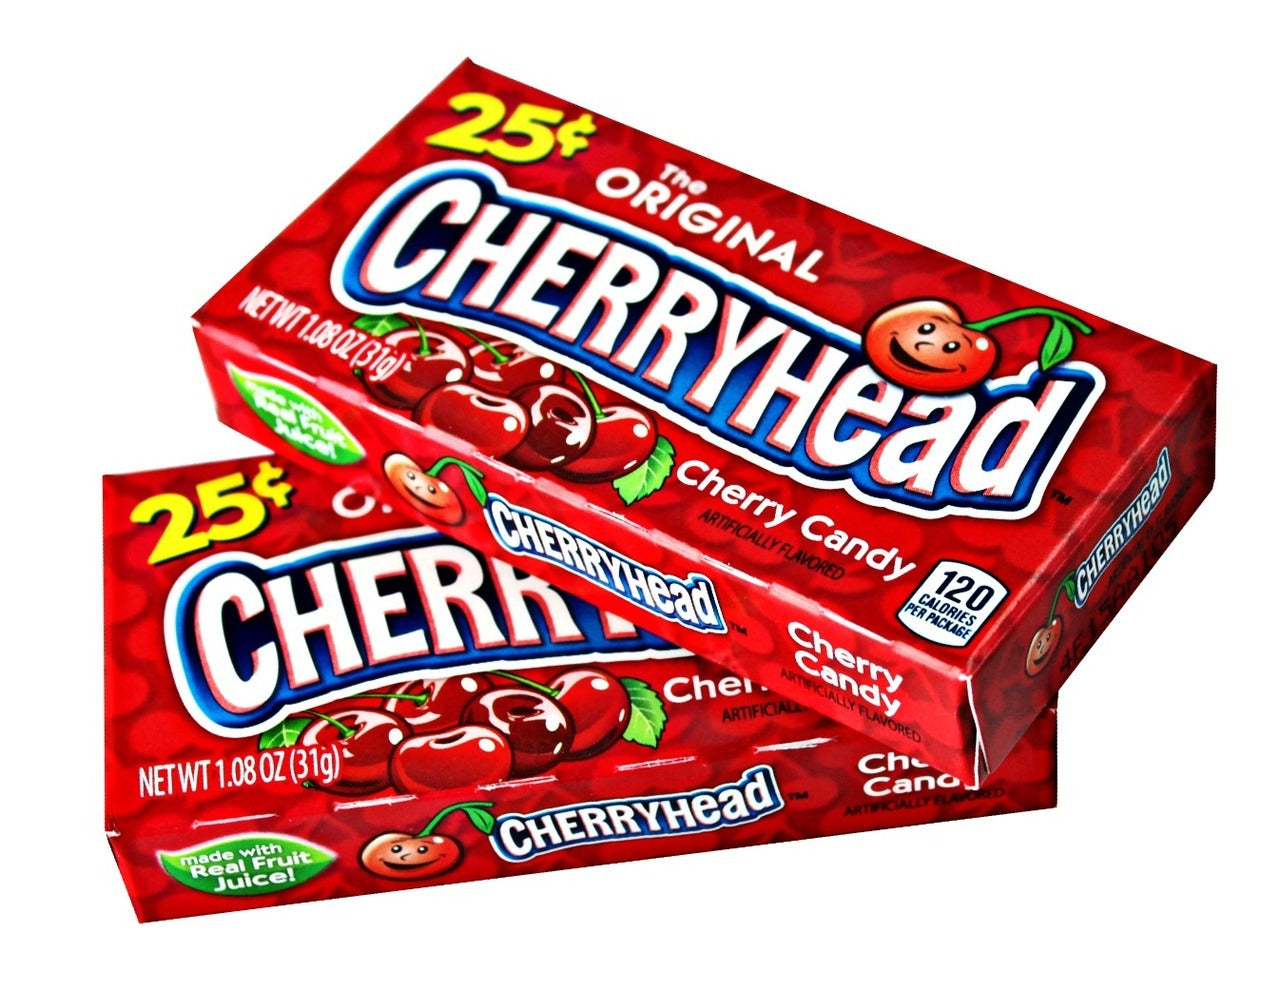 Ferrara Pan PrePriced $.25 Cherryhead Fruit Candy .8oz 24ct-online-candy-store-380356